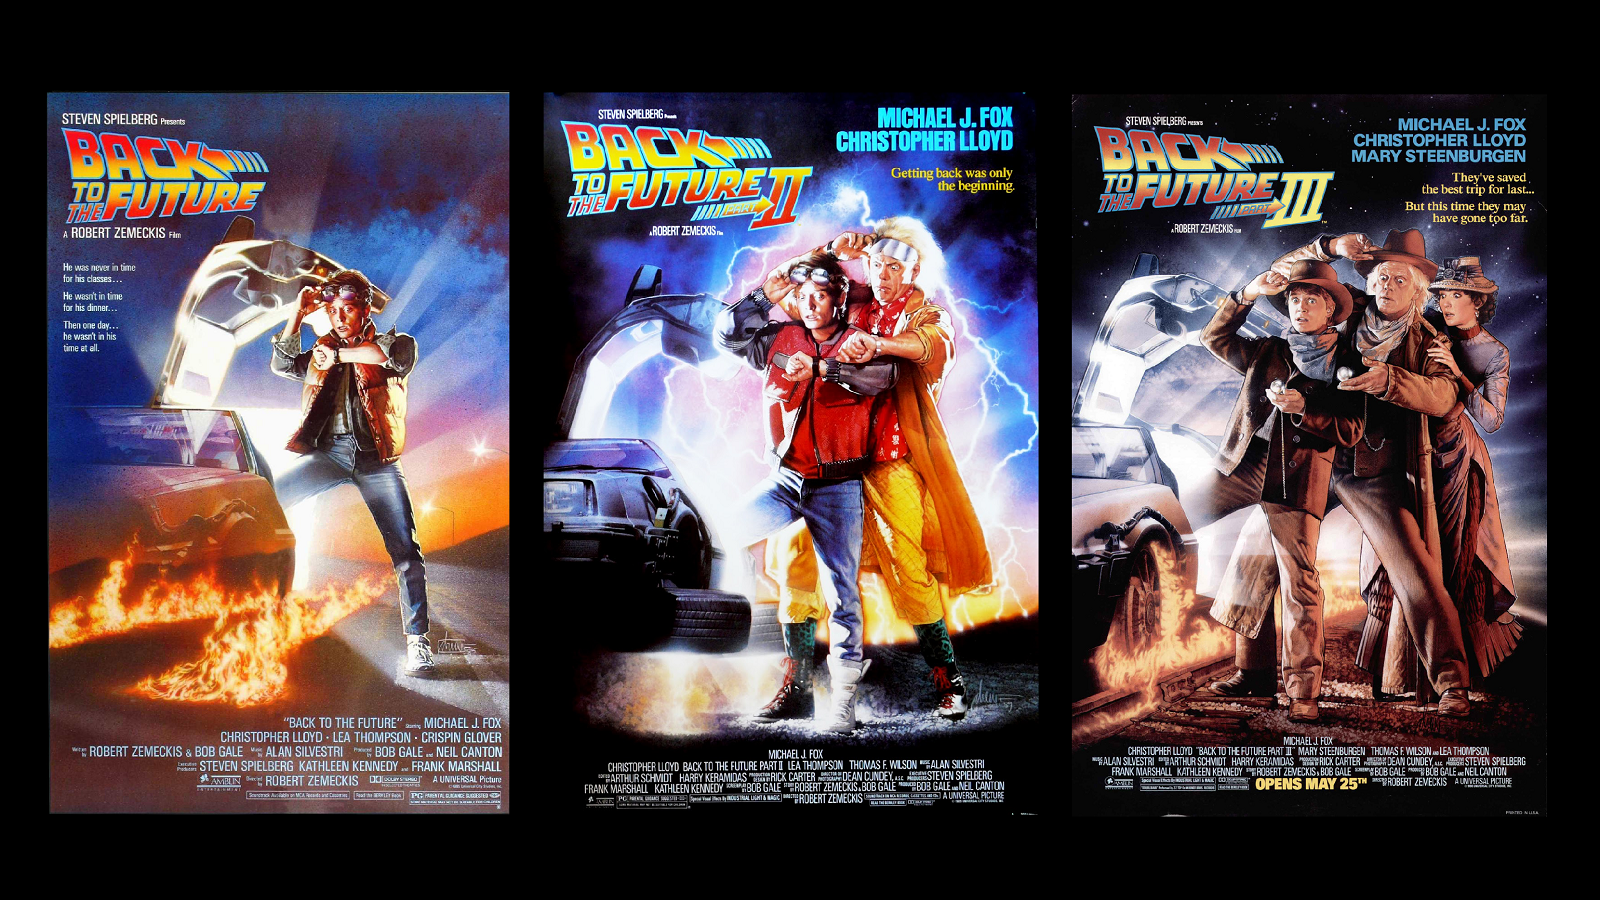 #trilogy, #back To The Future Wallpaper - Back To The Future 2 1989 Movie Poster , HD Wallpaper & Backgrounds